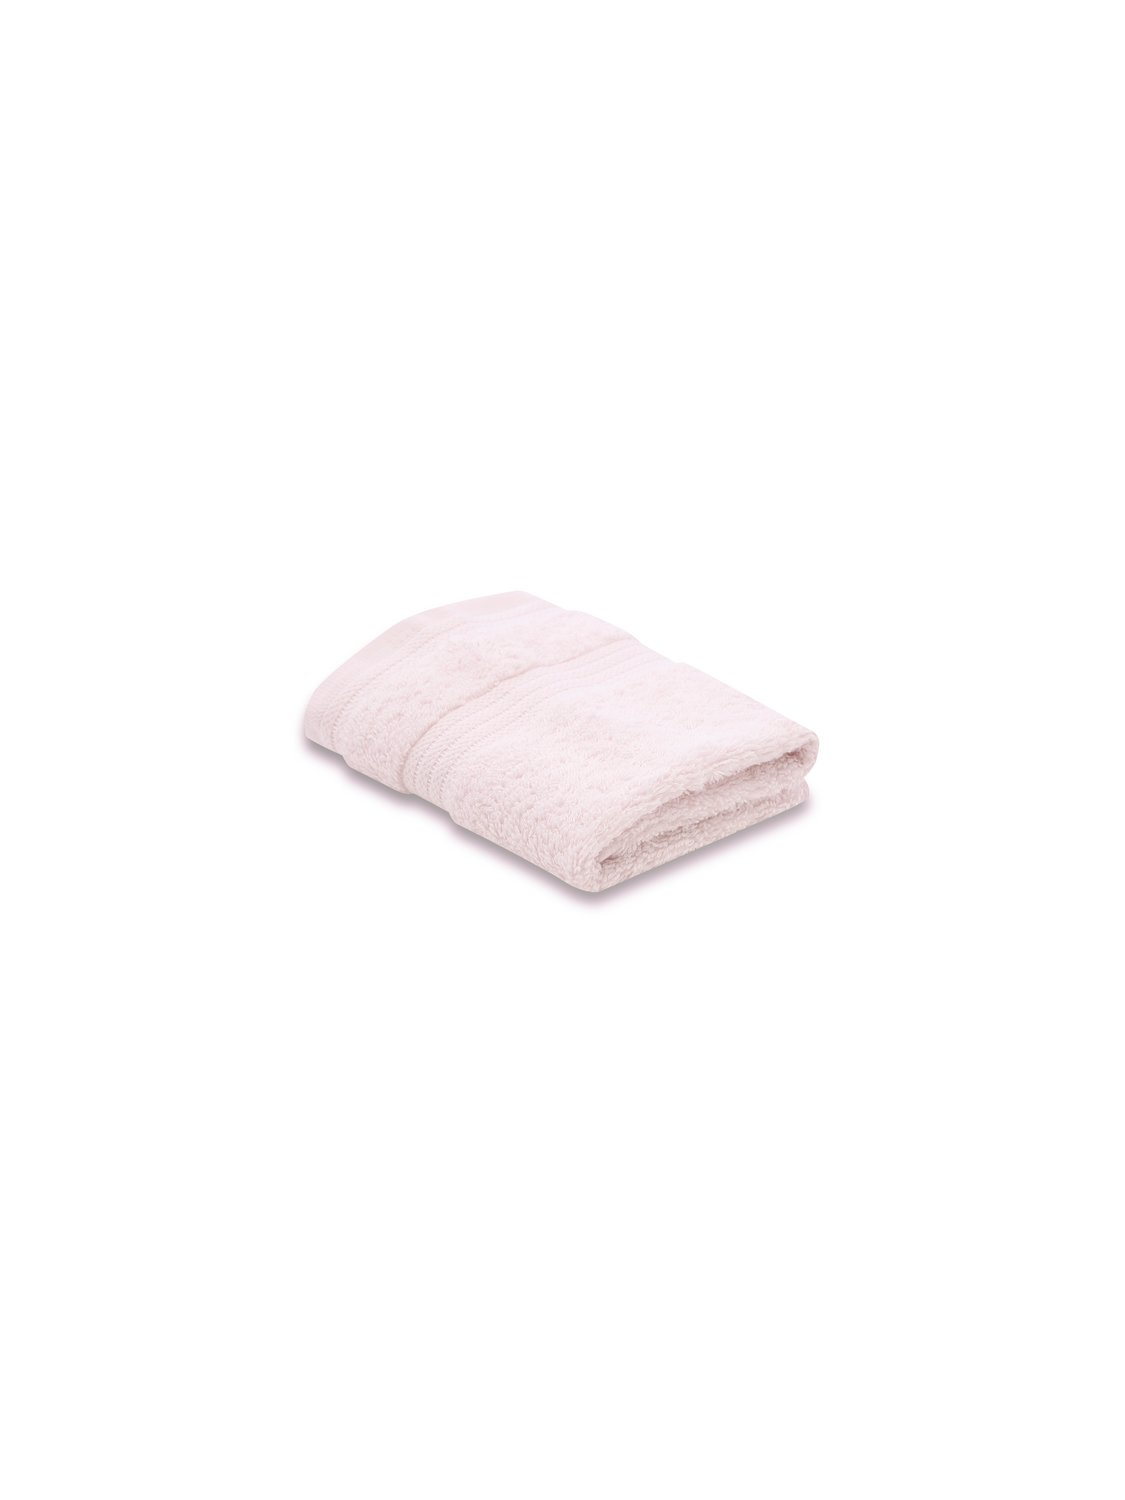 100% Combed Cotton 580Gsm Soft And Absorbent Bathroom Facecloth - Pale Pink